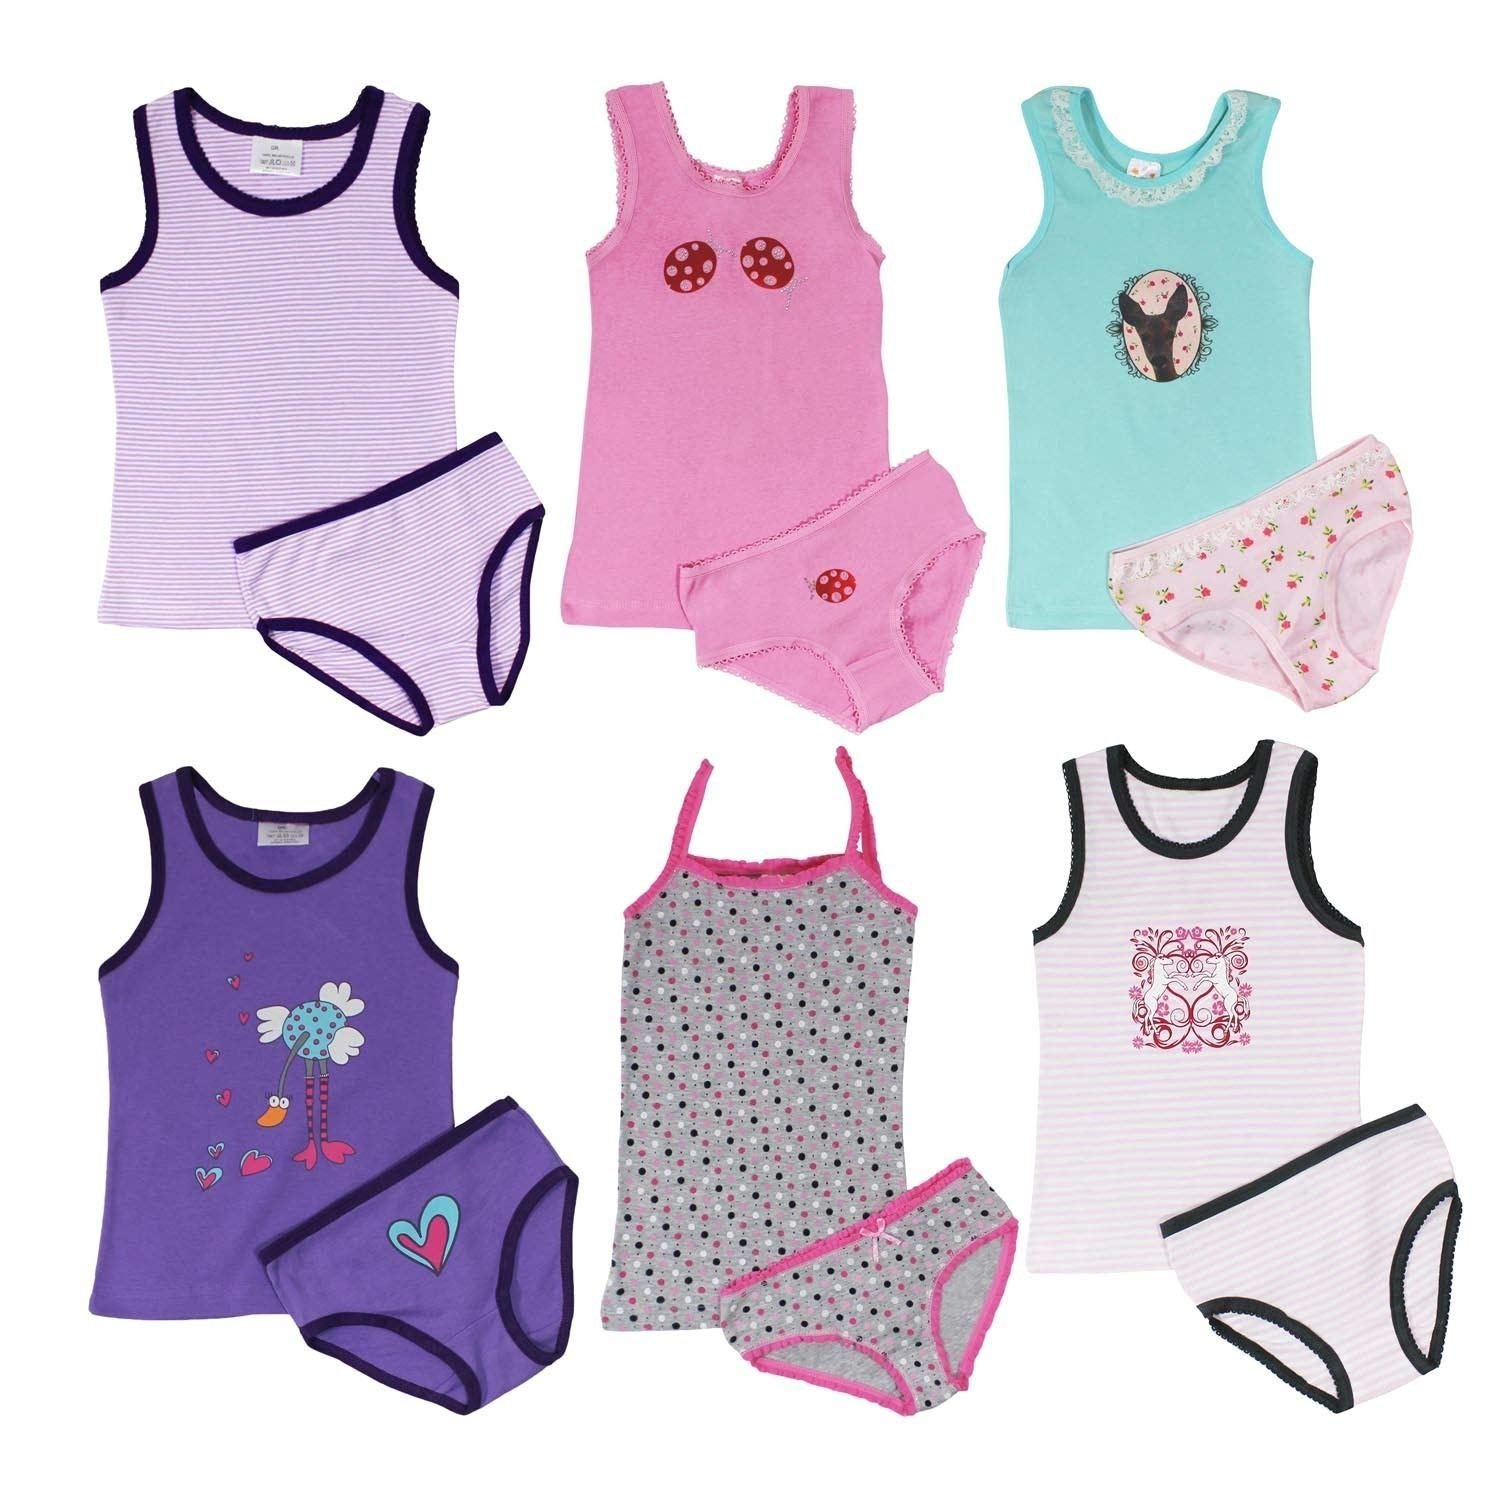 Anntry 2-8 Years Little Girls Solid Colors Soft Camisole Undershirts 4 Pack Kids Comfort Breathable Tank Tops